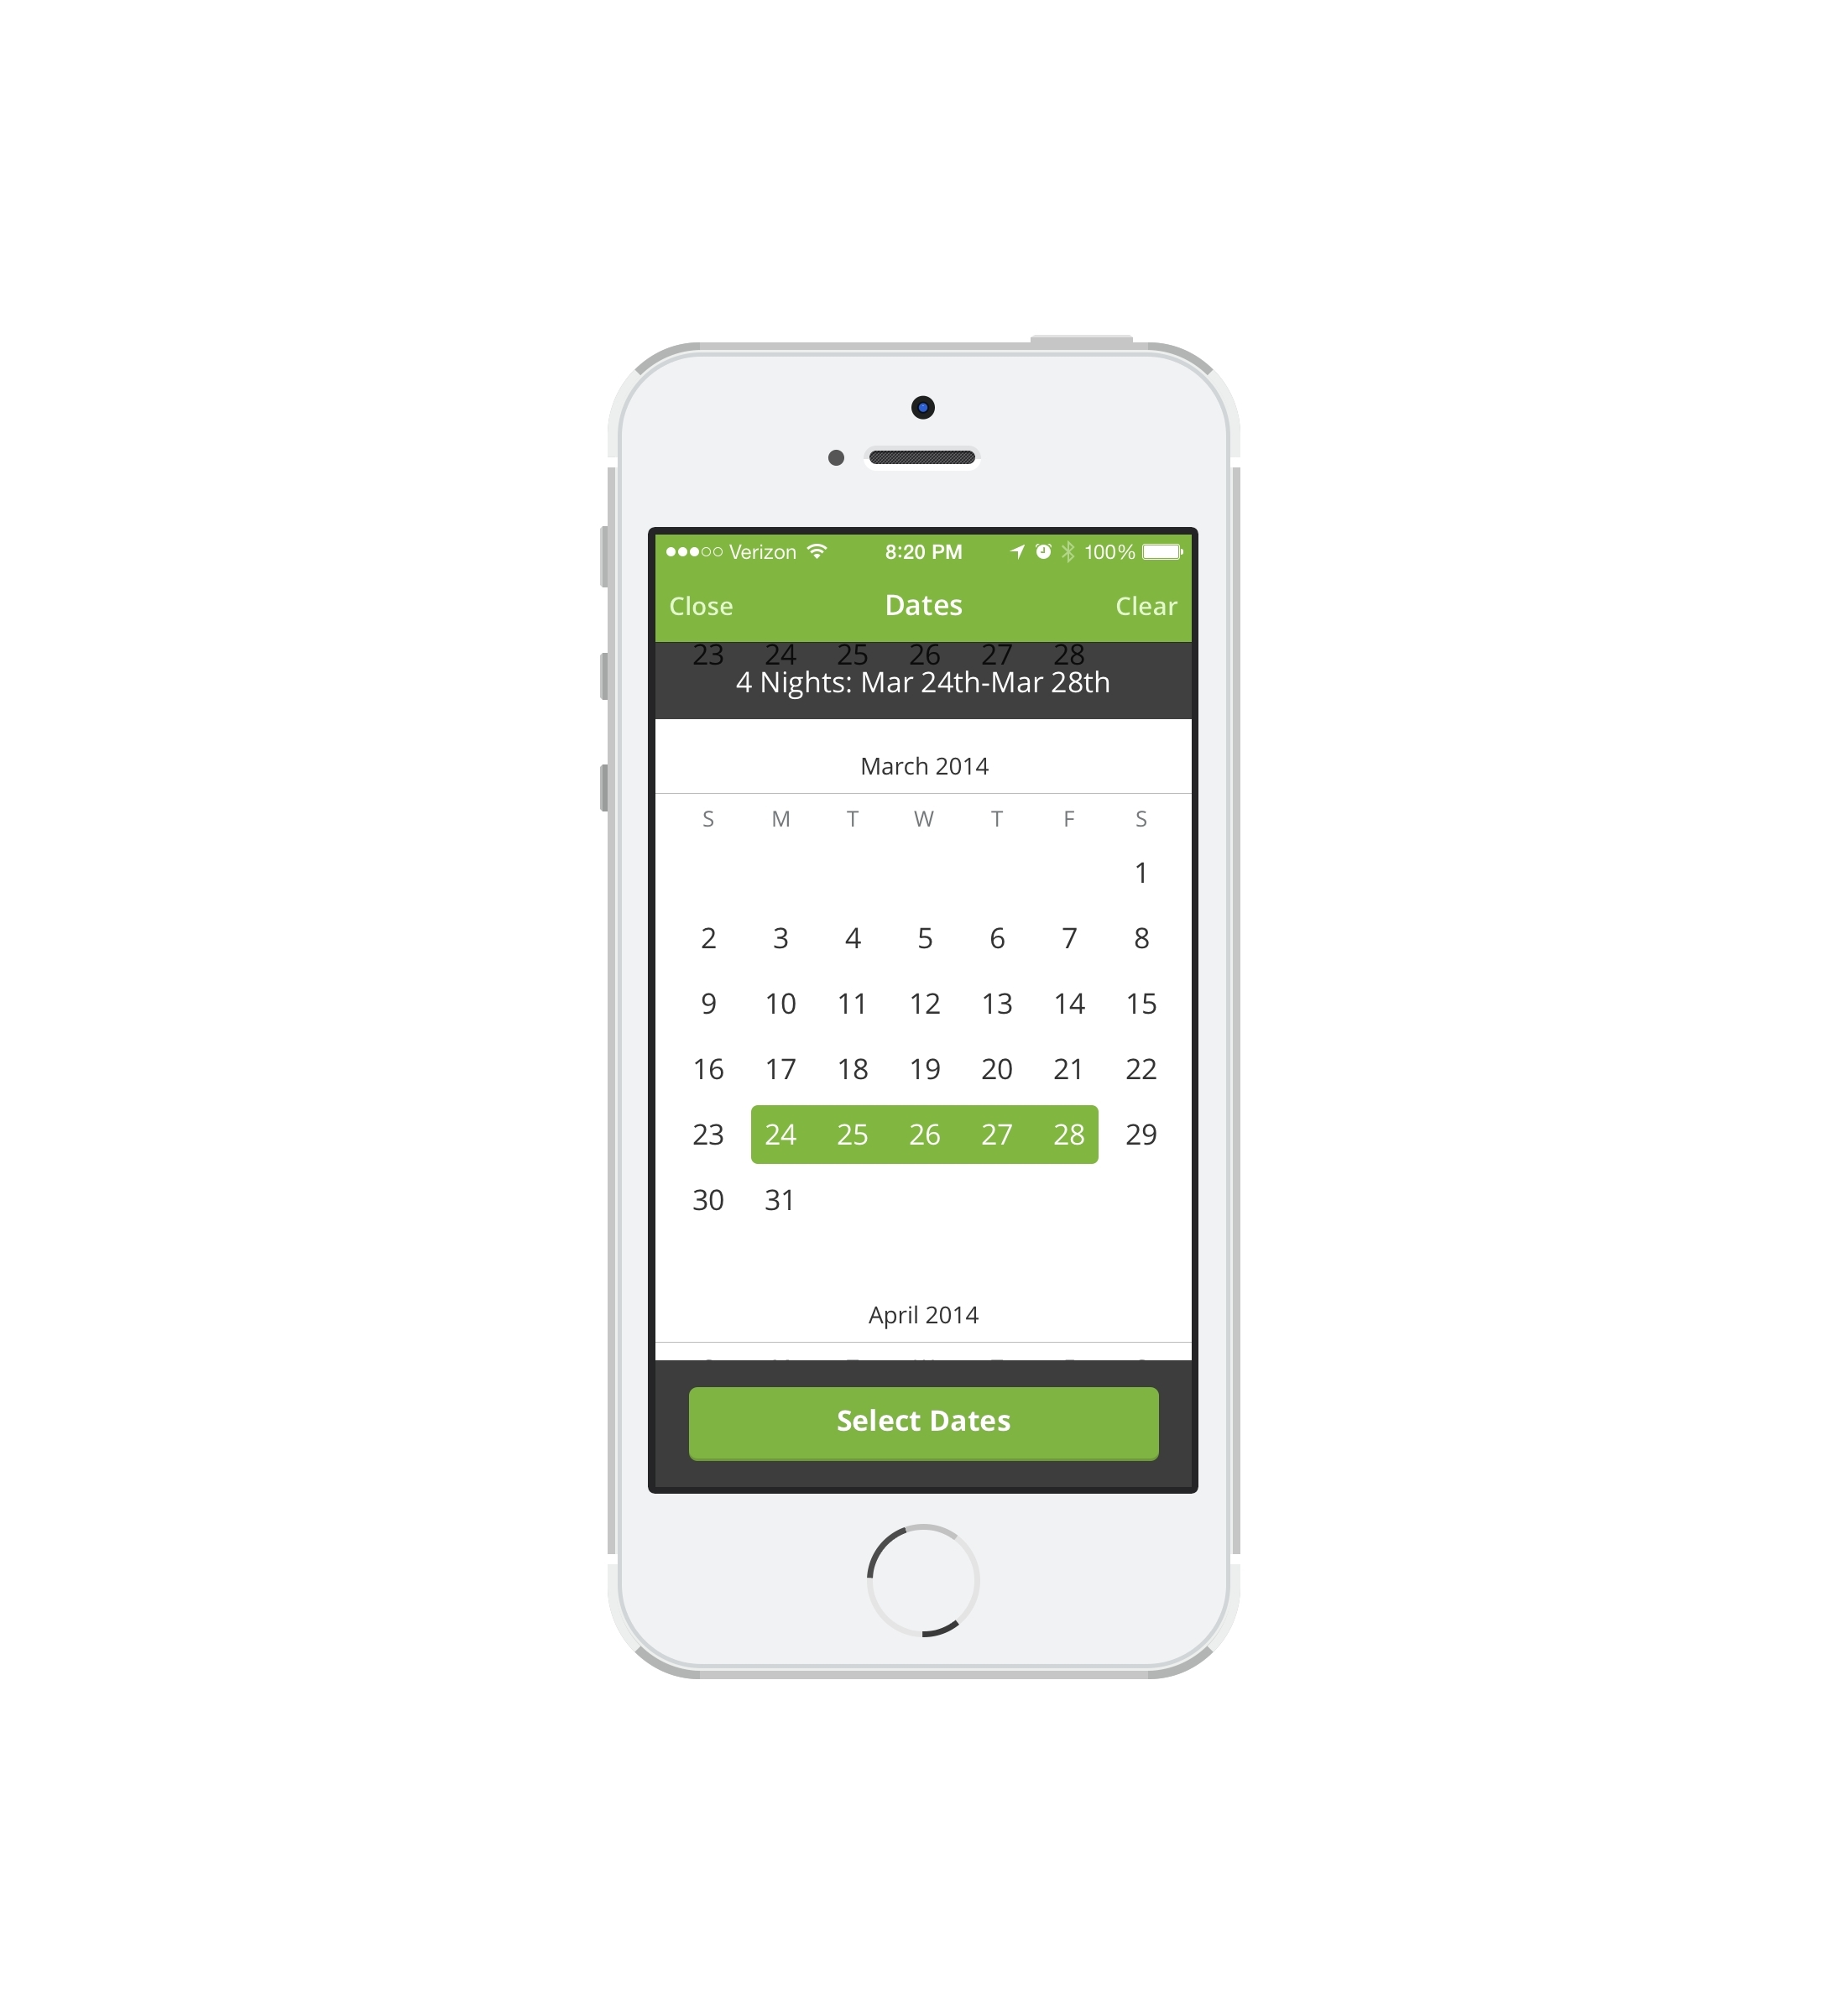 Most hotels in the Groupon Getaways marketplace have a booking calendar, which eliminates the need for vouchers and lets consumers select and confirm the exact dates they want to travel based on price and room availability. (Photo: Business Wire)